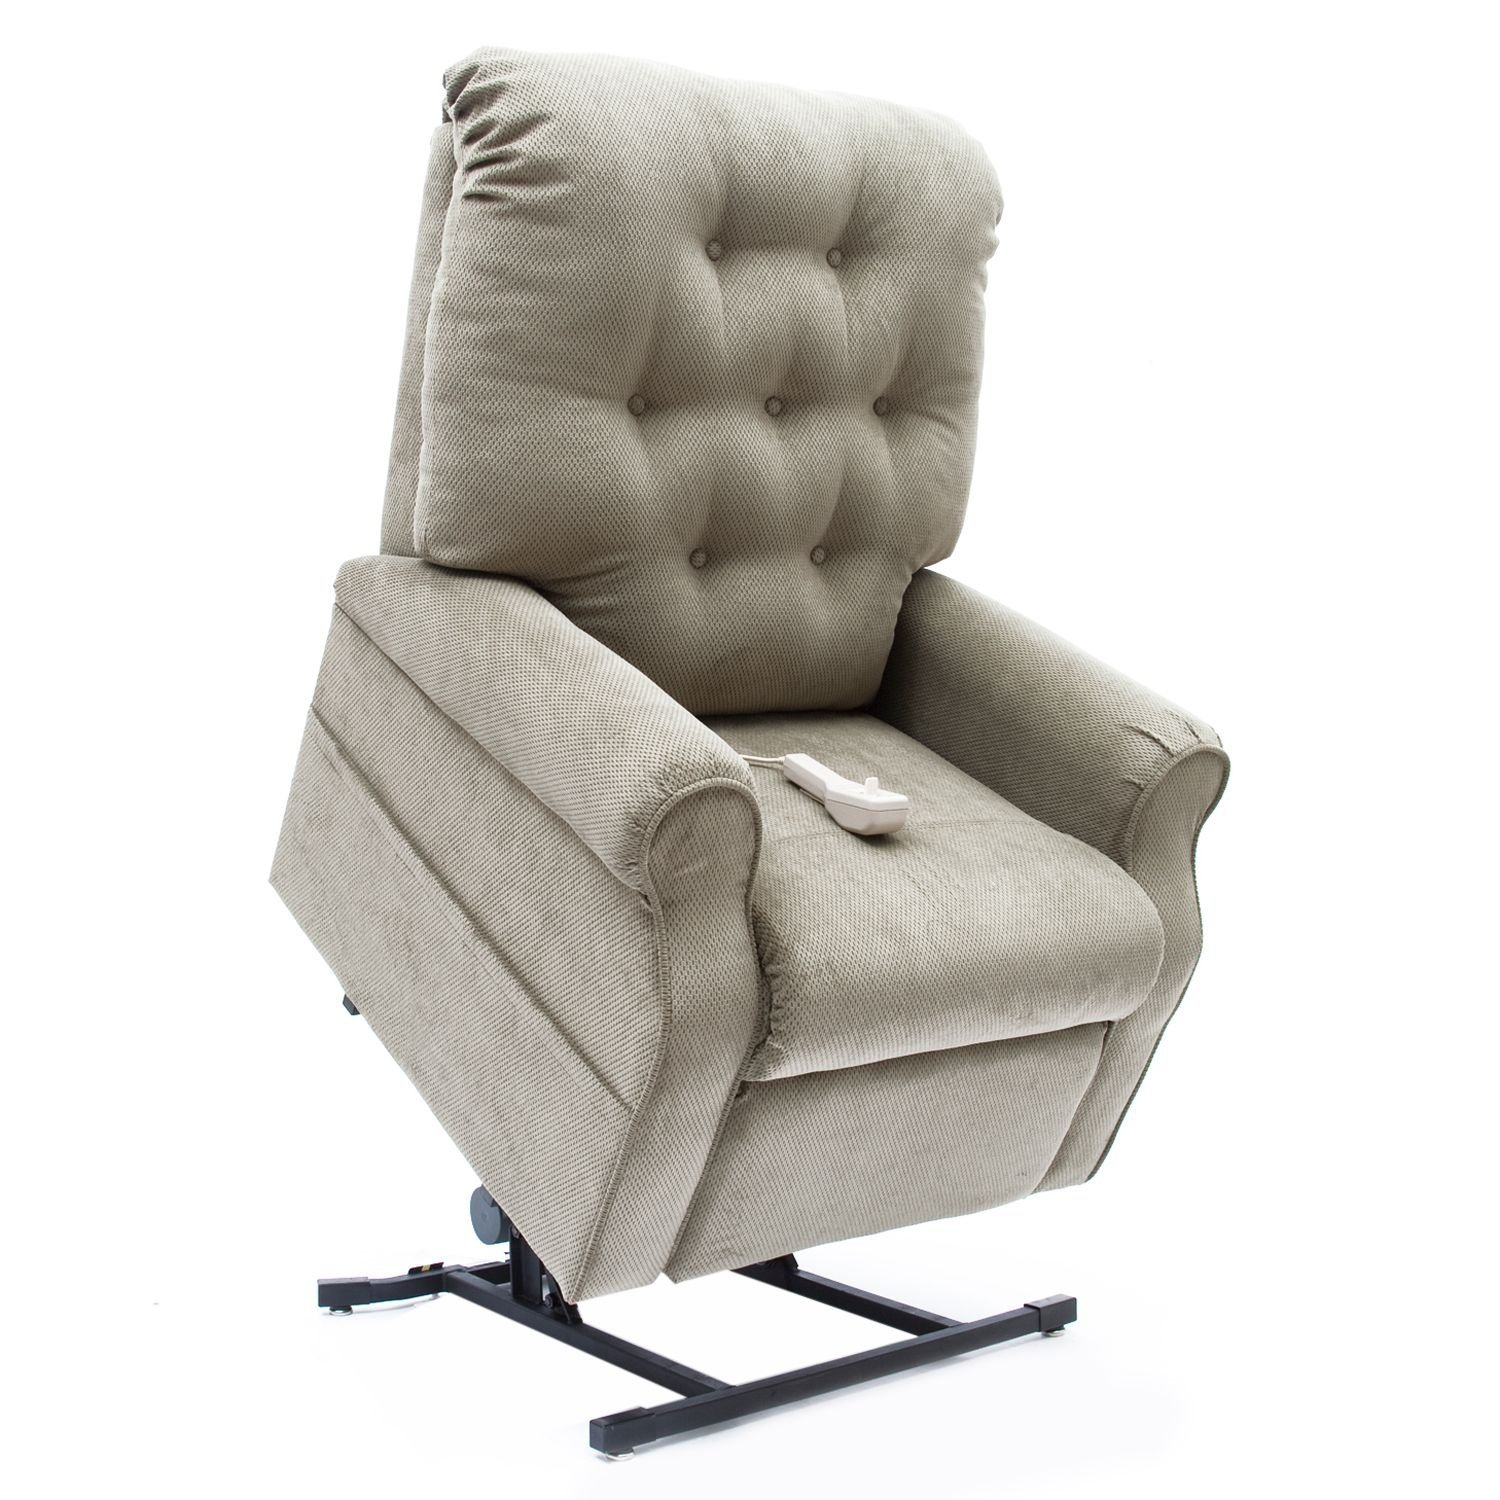 Okin Lift Chair Taiwan Okin Lift Chair And Recliner Chair Mechanism Taiwantrade